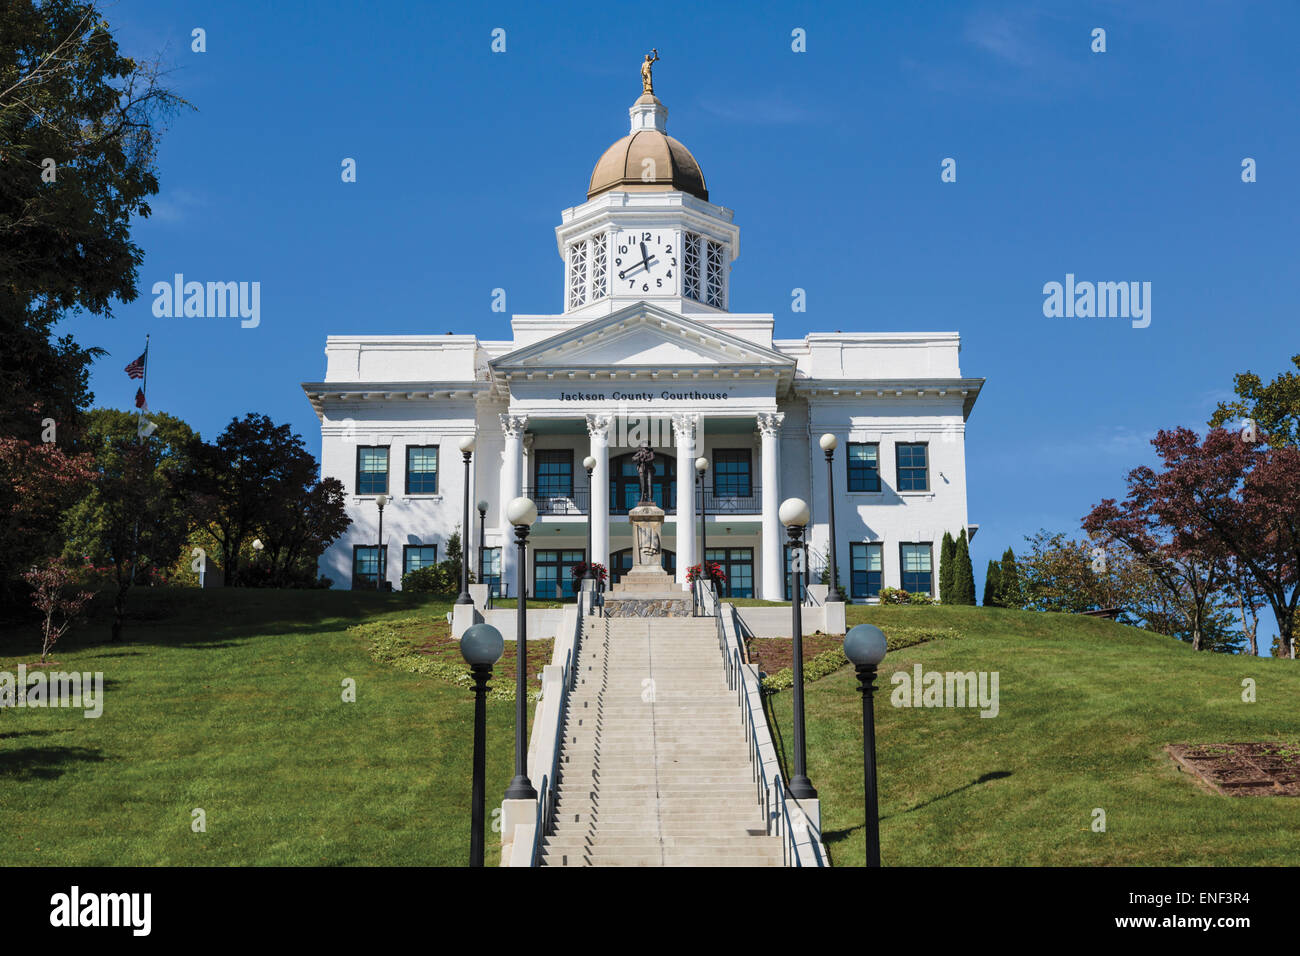 Sylva, Jackson County, North Carolina, United States of America.  Jackson county courthouse. - Stock Image